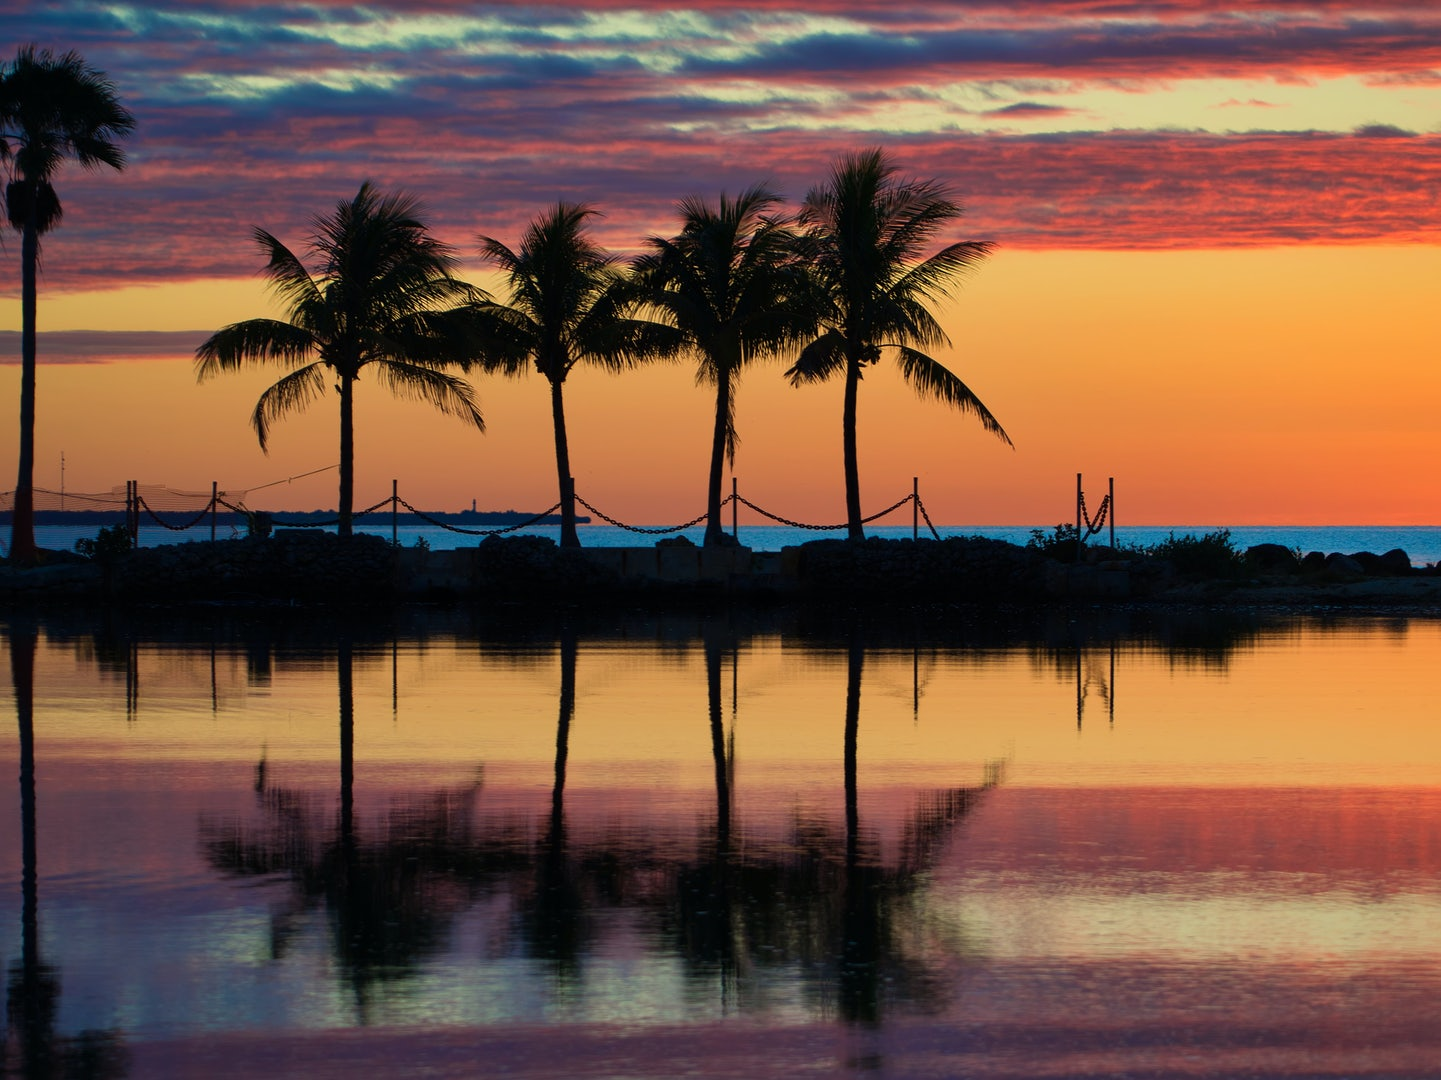 view of colorful sunset at the Matheson Hammock Park